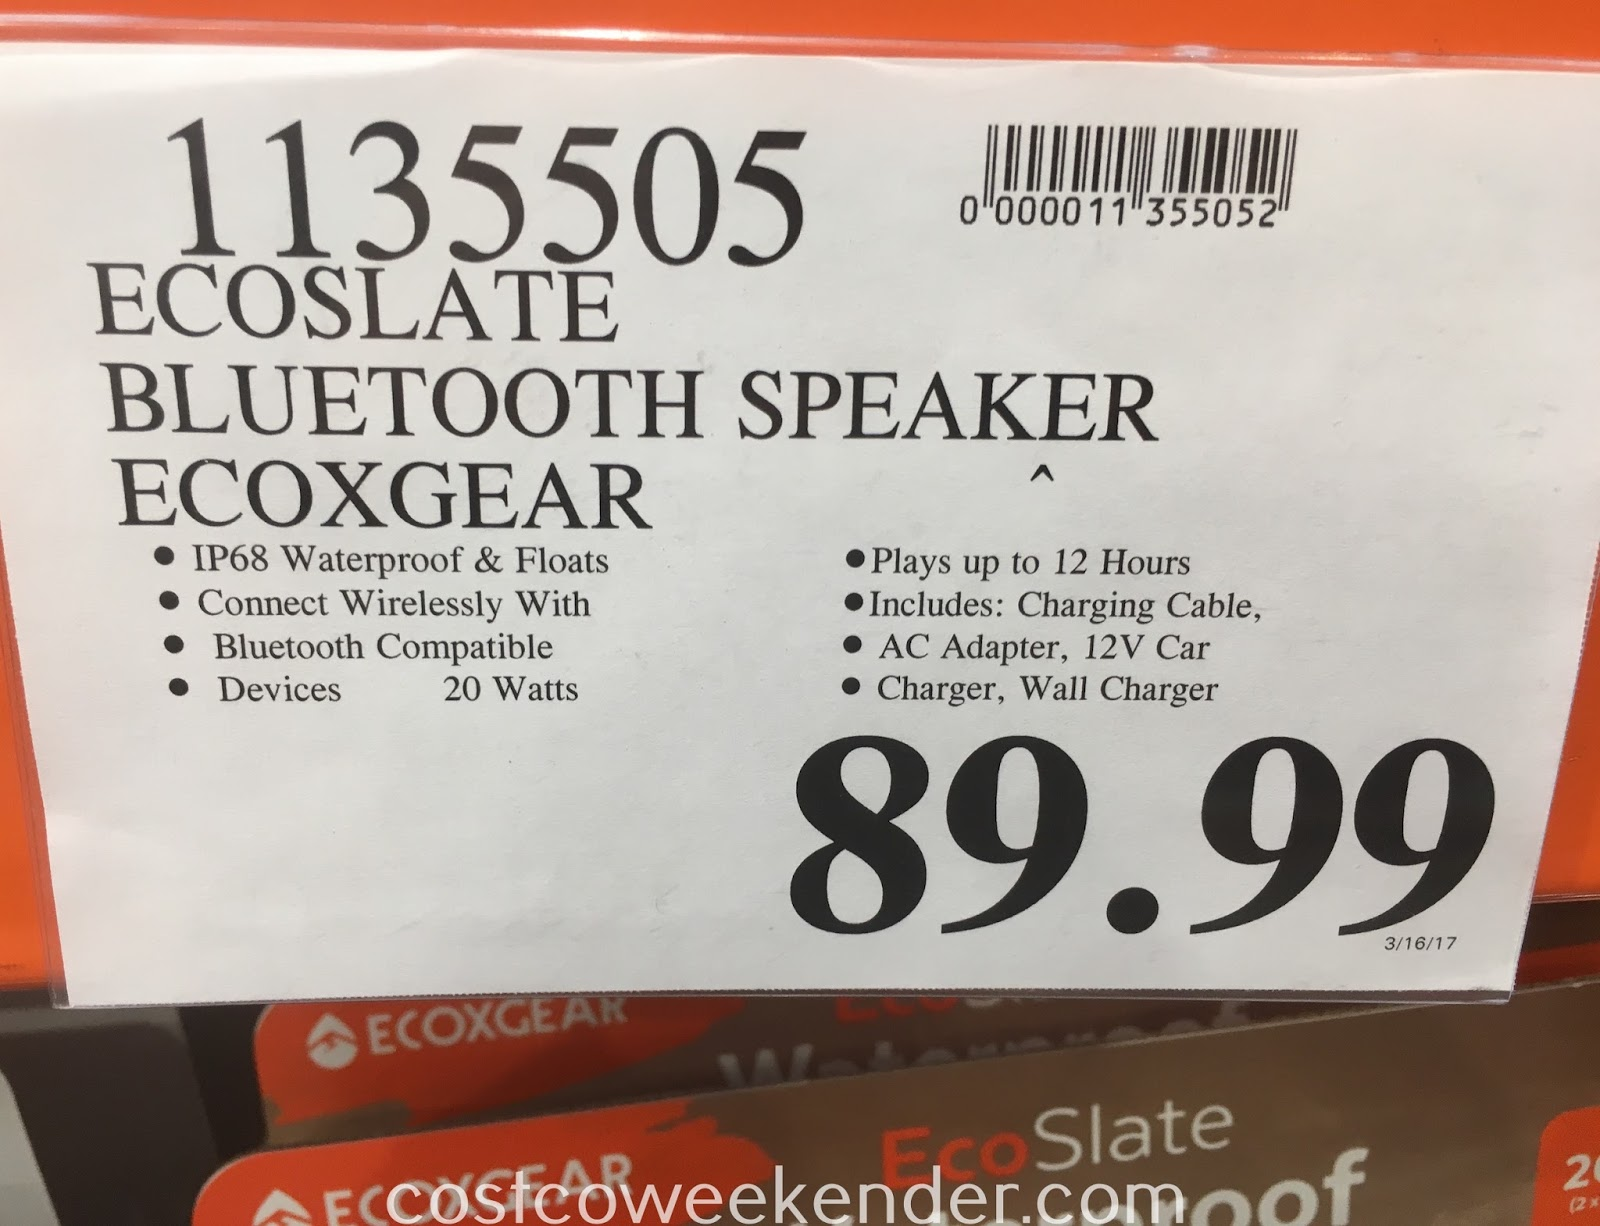 Deal for the ECOXGEAR EcoSlate Bluetooth Speaker at Costco